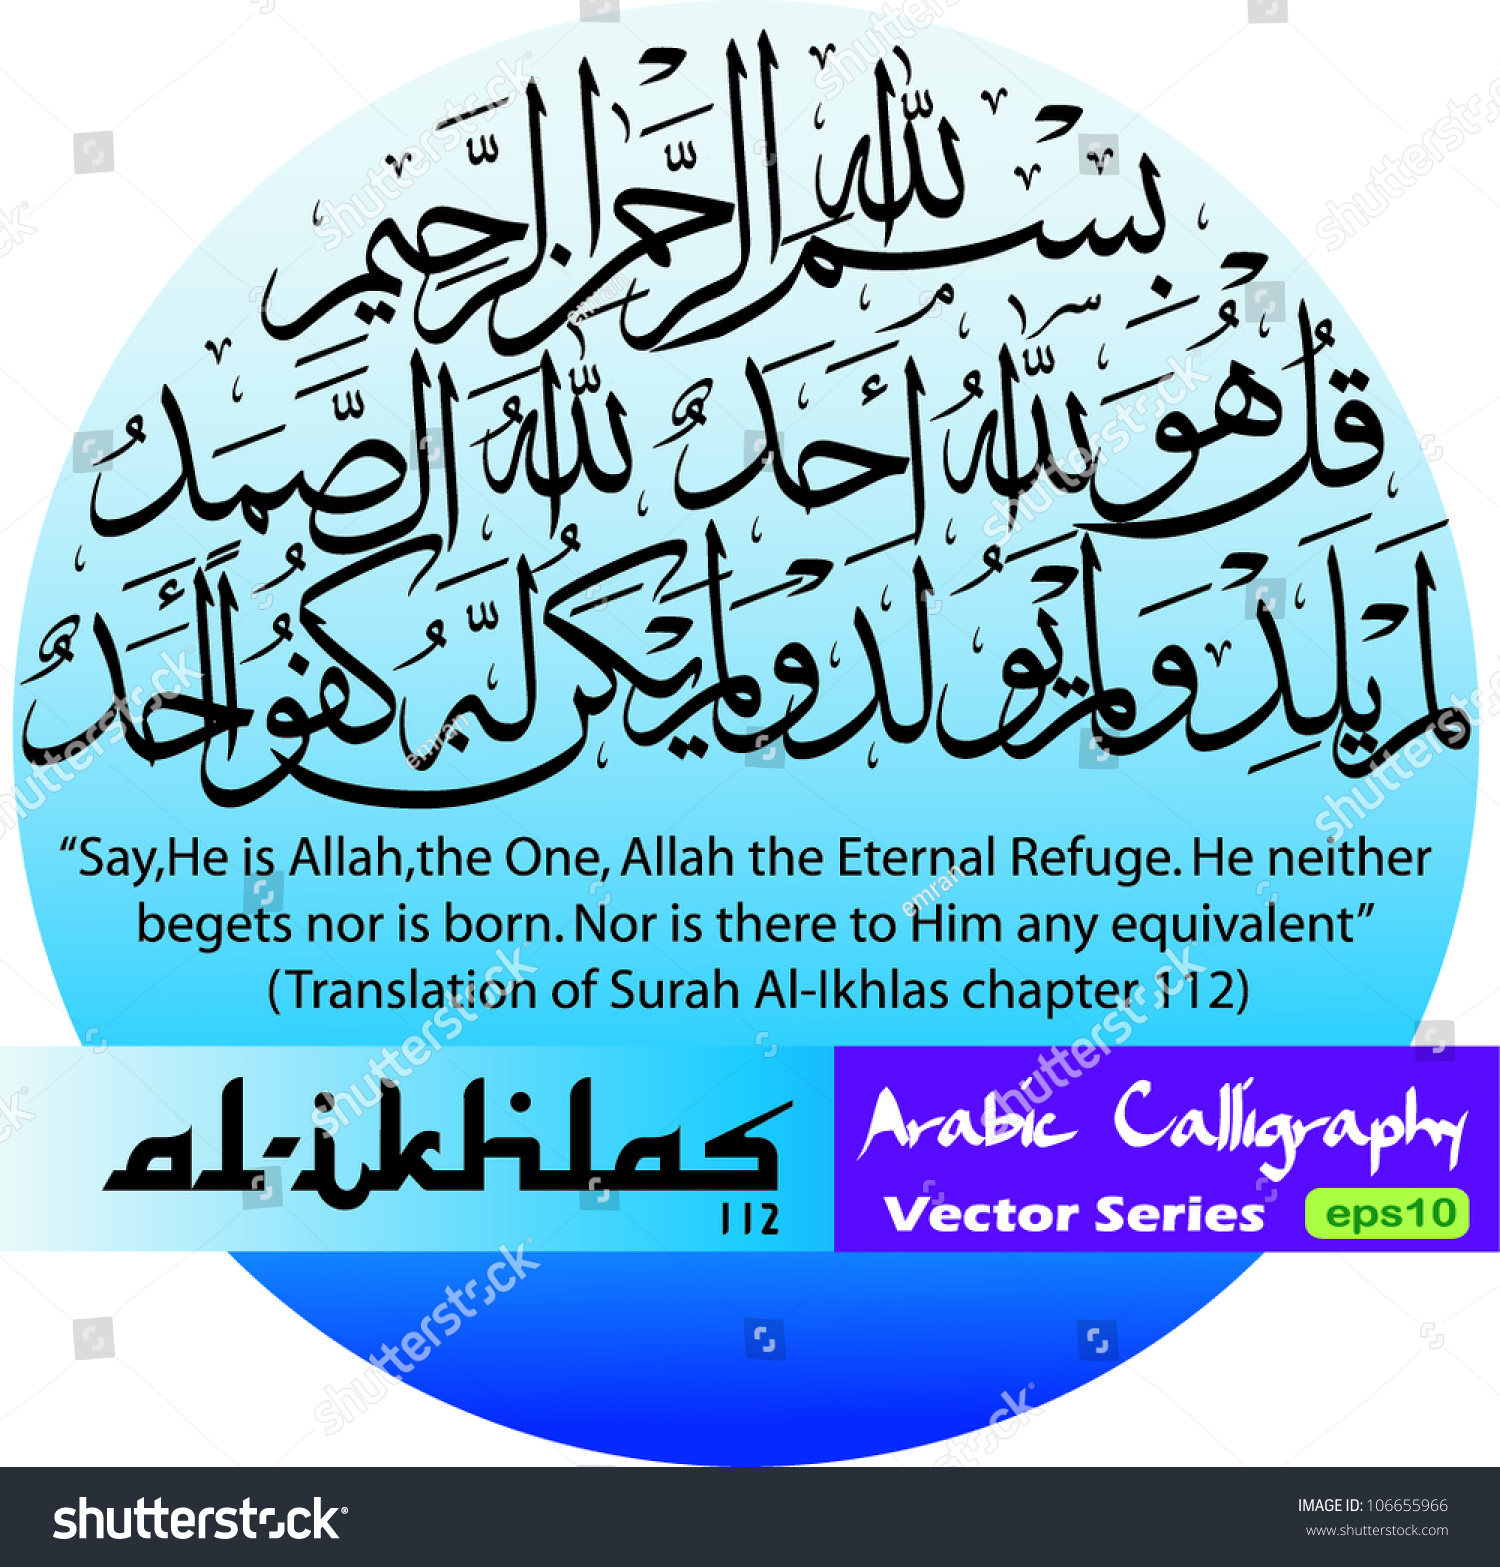 Al Ikhlas 112th Surah Koranqurantranslated Assayhe Stock Vector ...